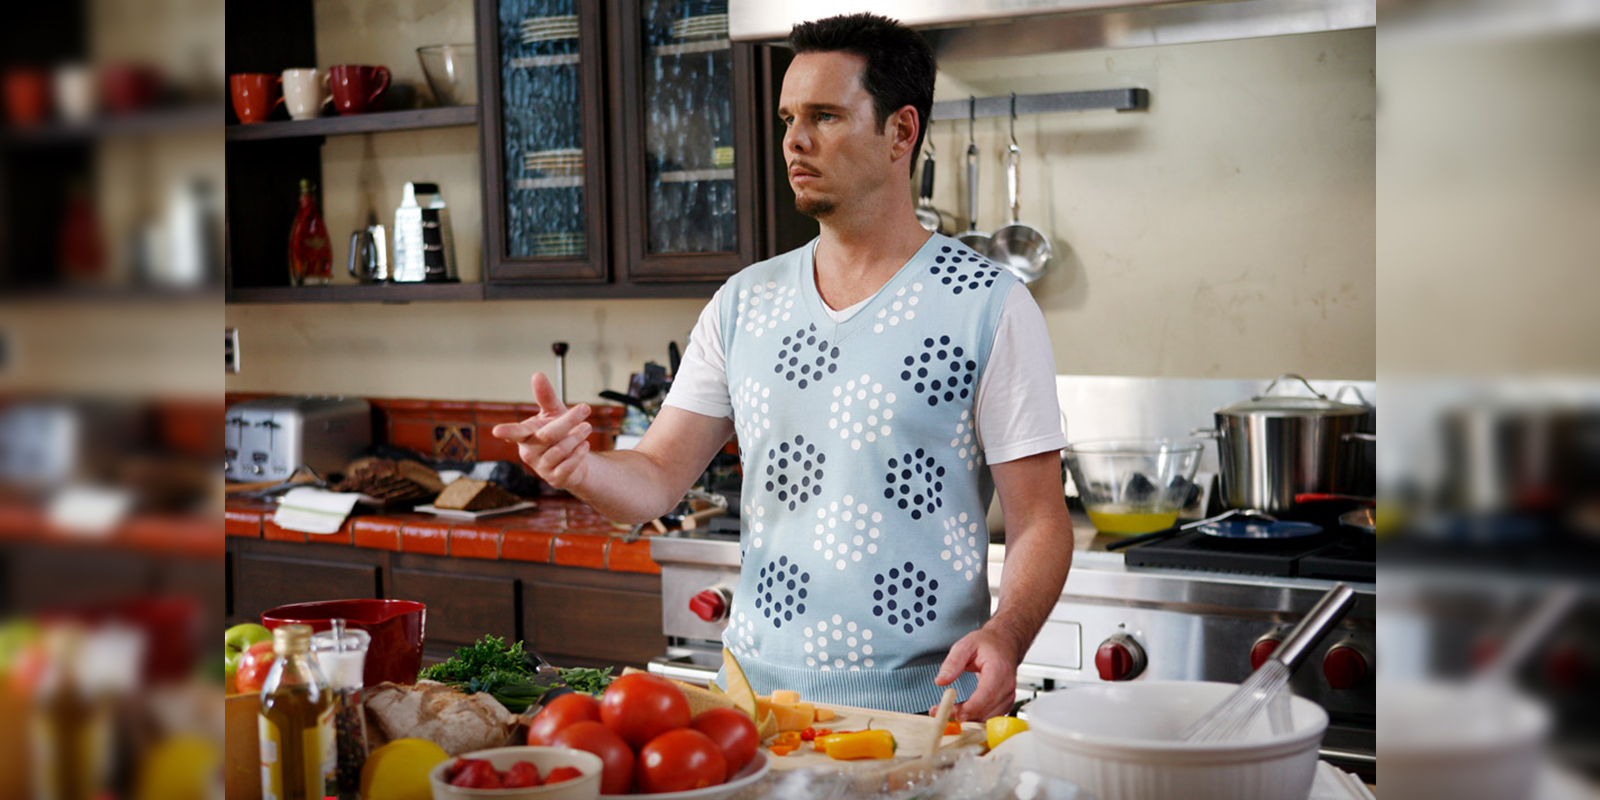 New Study Shows More Men Are Cooking In The Kitchen And